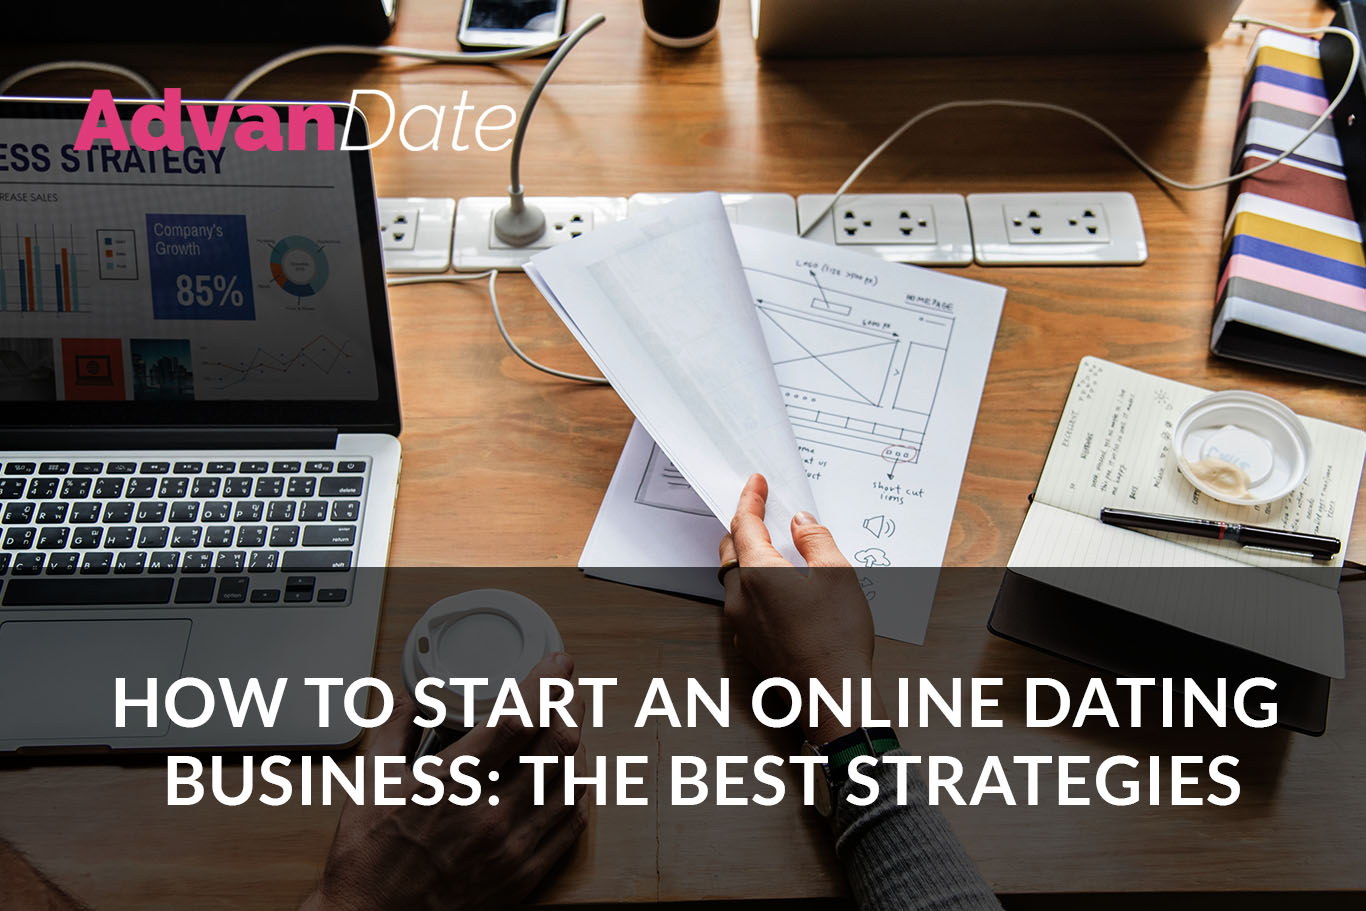 How to start an online dating business: the best strategies